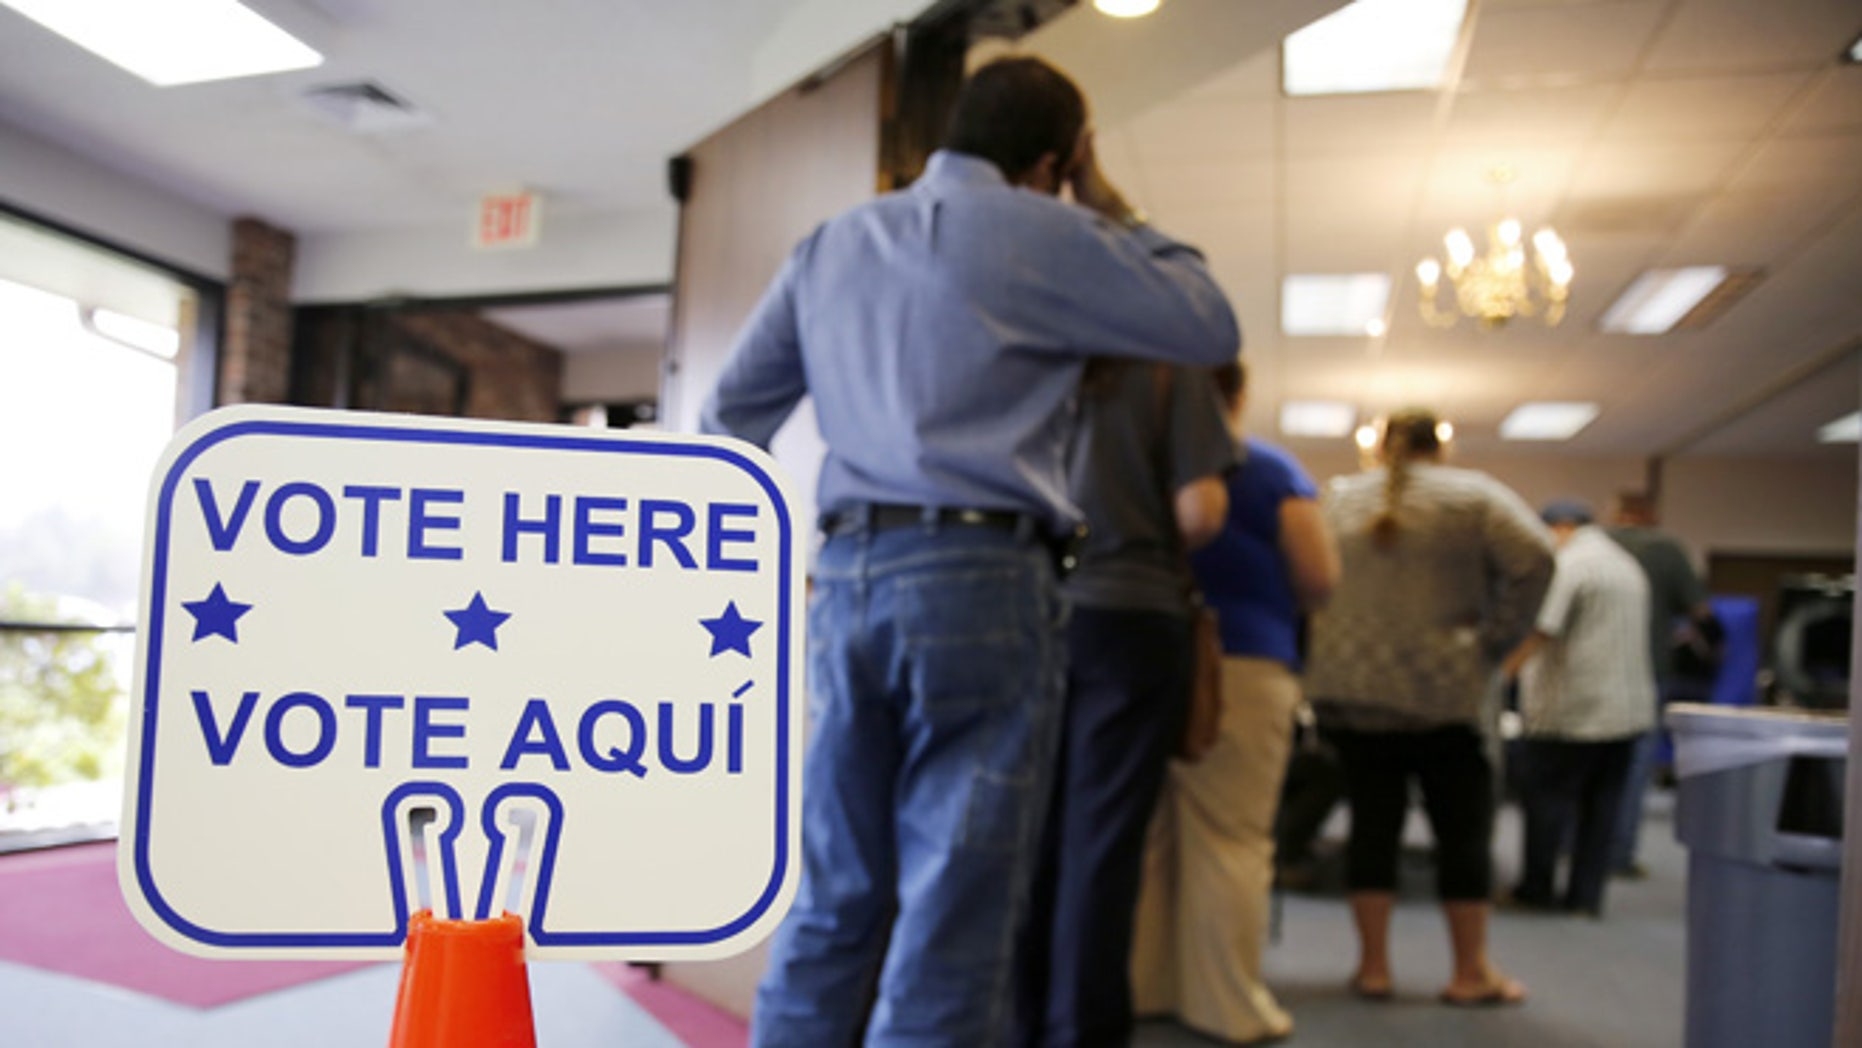 ROSENBERG, TEXAS - MARCH 1:  Voters stand in line to cast their ballots inside Calvary Baptist Church March 1, 2016 in Rosenberg, Texas. Voters in 12 states go to the polls in today's Super Tuesday.  (Photo by Erich Schlegel/Getty Images)